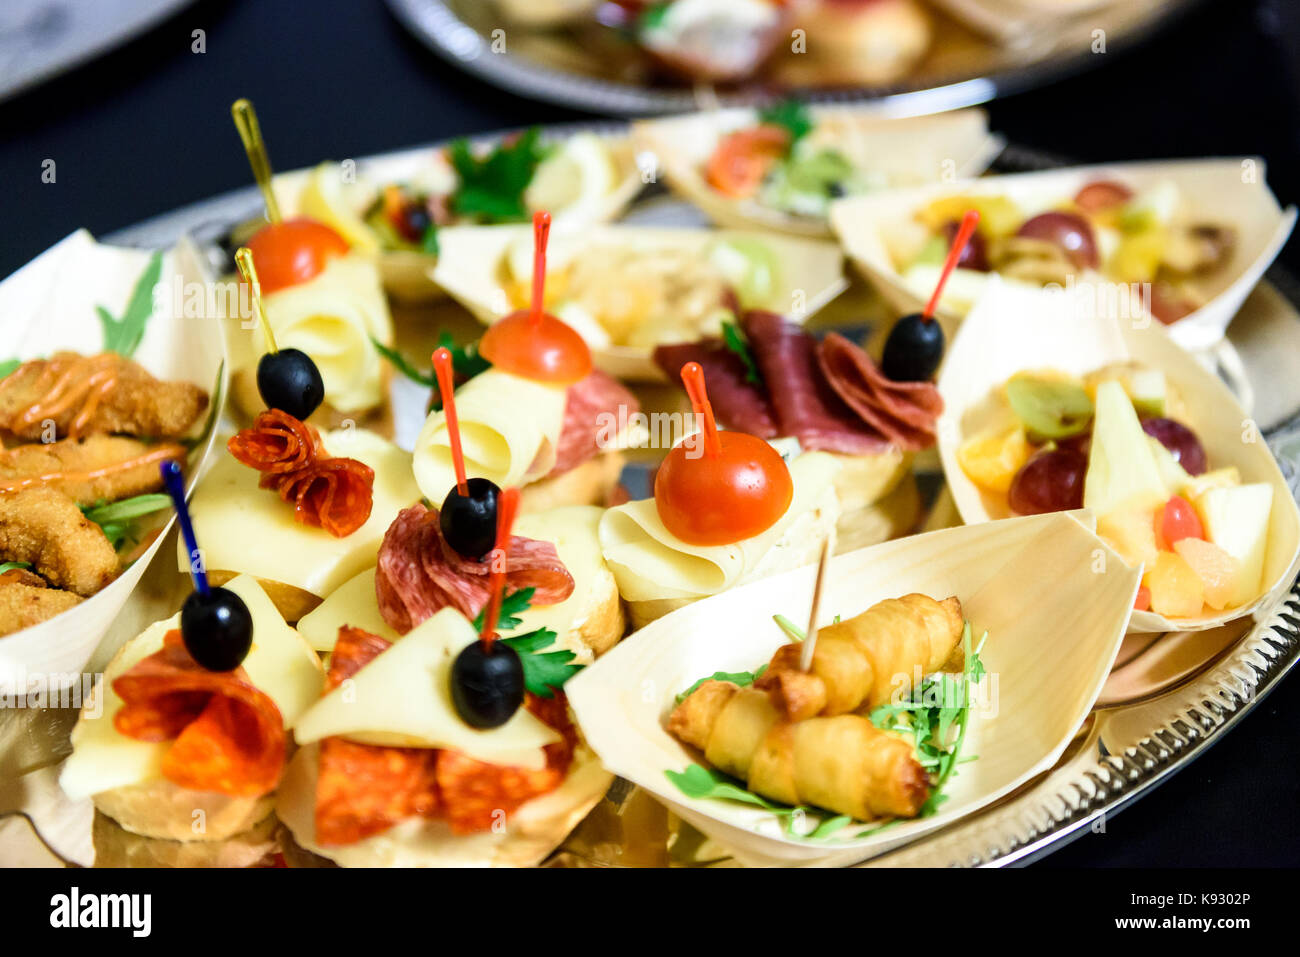 Appetizers christmas stock photos appetizers christmas for Canape wraps